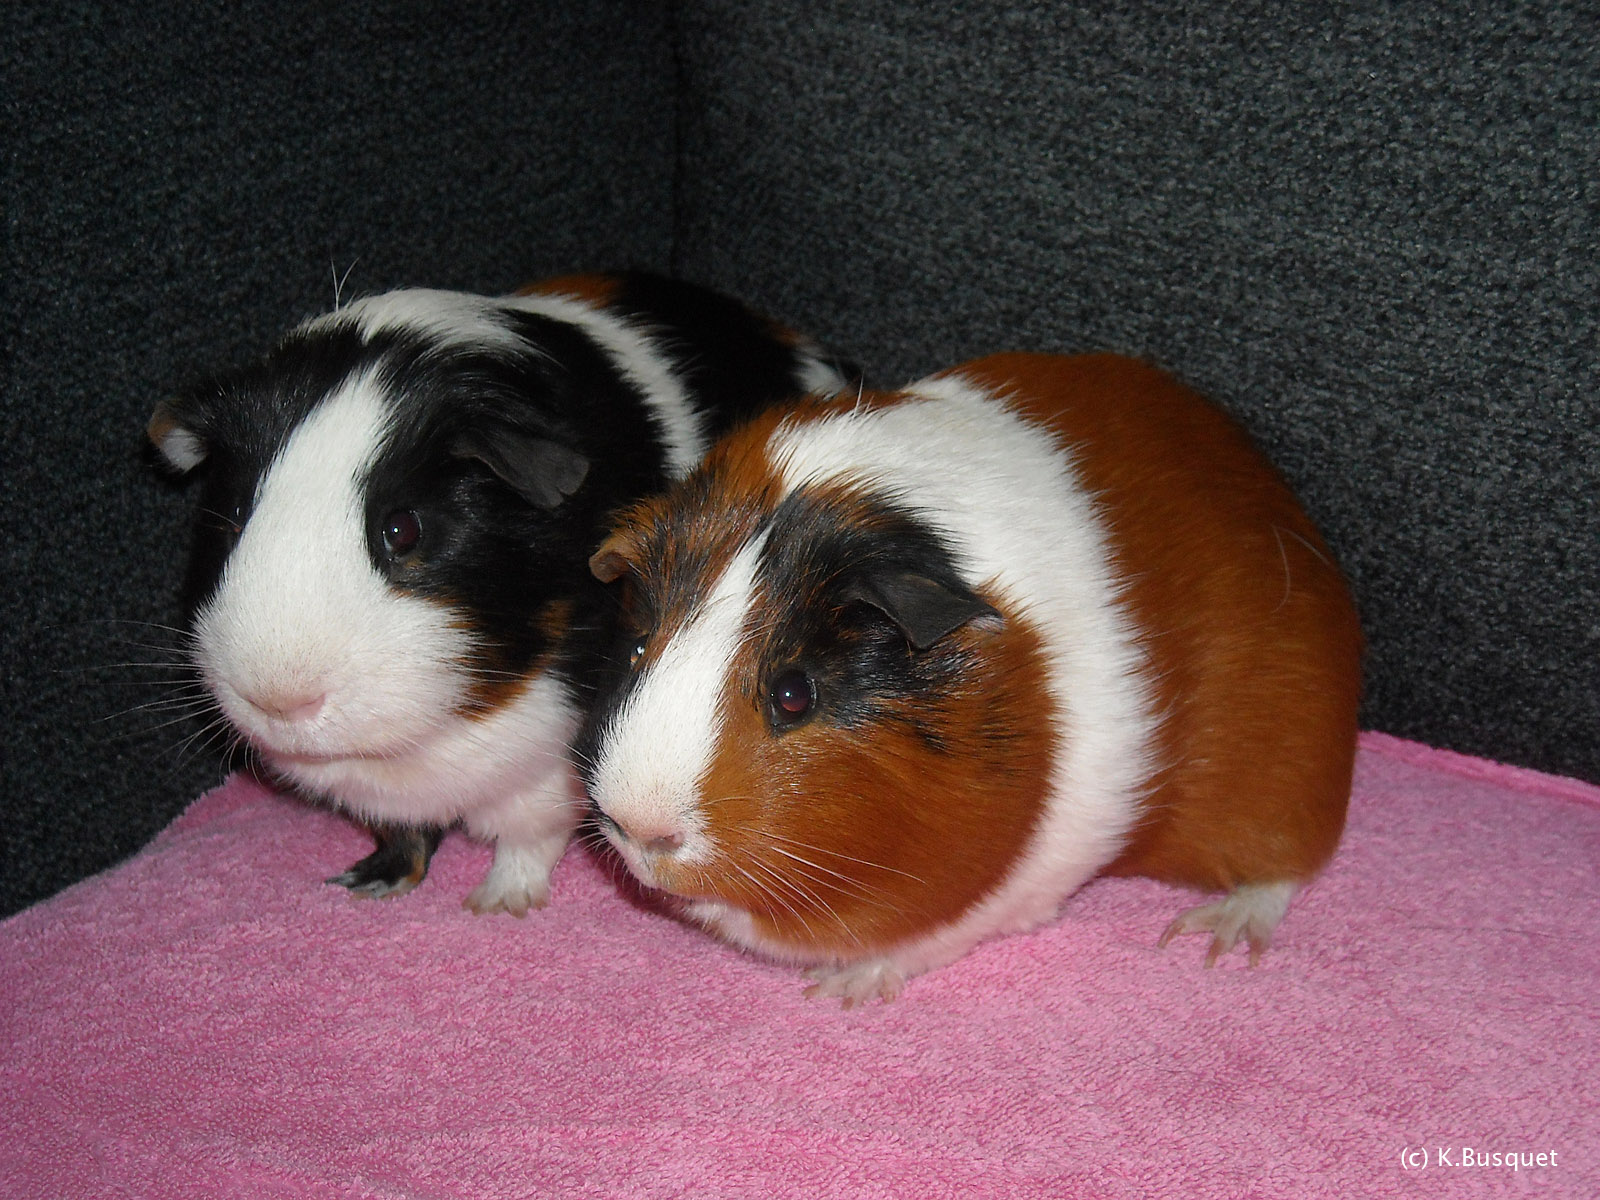 FREE HD PHOTO GALLERY HD Wallpapers of Guinea pig 1600x1200